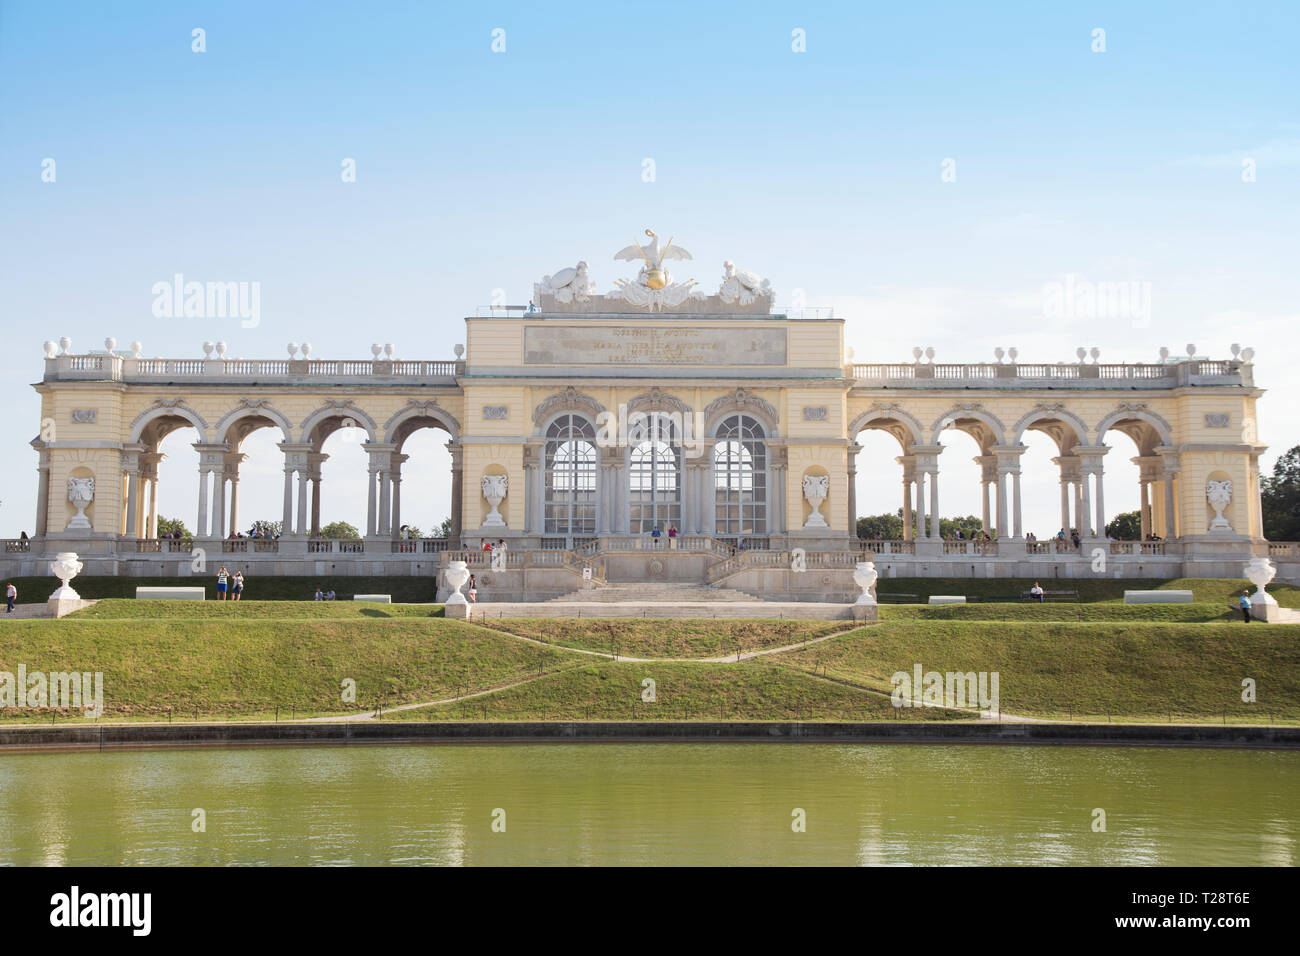 Vienna, Austria - July 06 2018: 'Schonbrunn' palace (Schloss Schonbrunn) and the Gloriette Building – Stock Editorial Photography - Stock Image